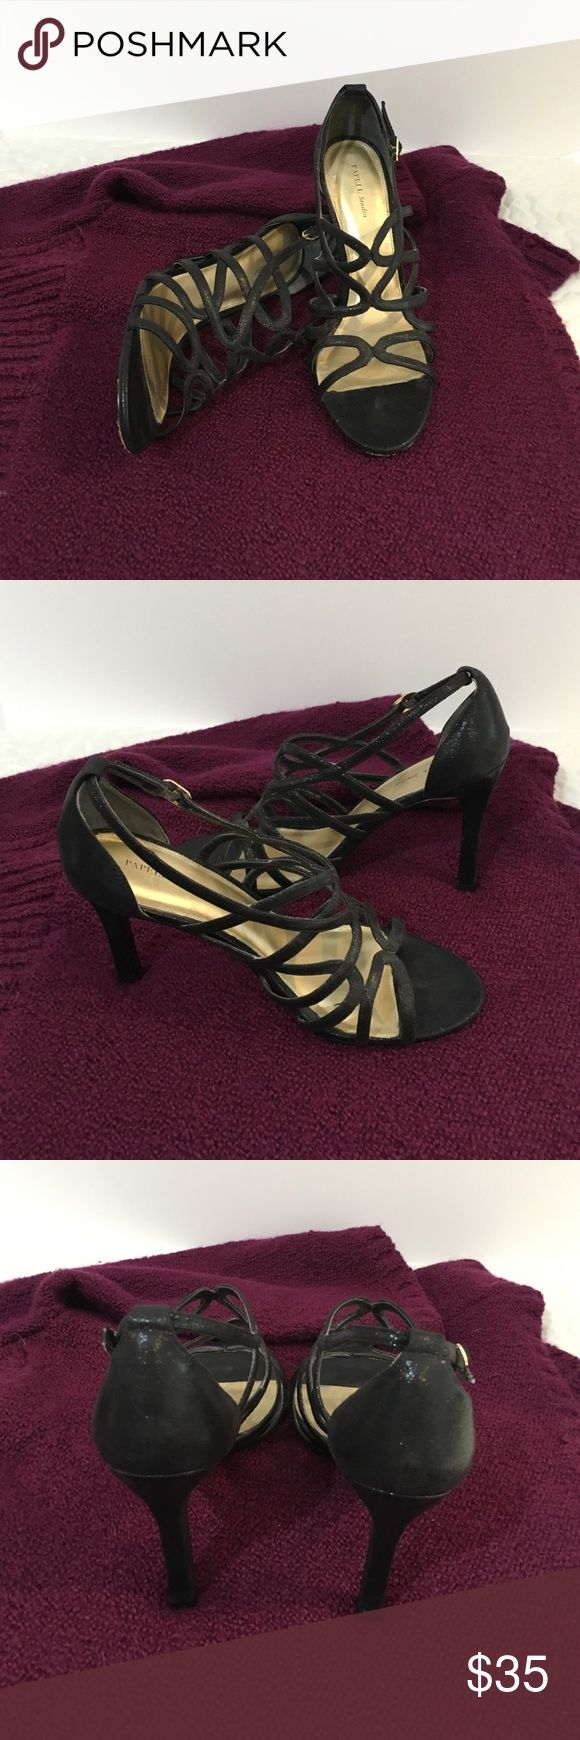 Patel Studio Black Strappy Shoes These were worn once. In good condition, gently used. They are a shiny/sparkly black in color. 4 inches heel. See pics for wear on bottom of shoe.  Great with a dress, slacks or even jeans. Papell Studio Shoes Heels